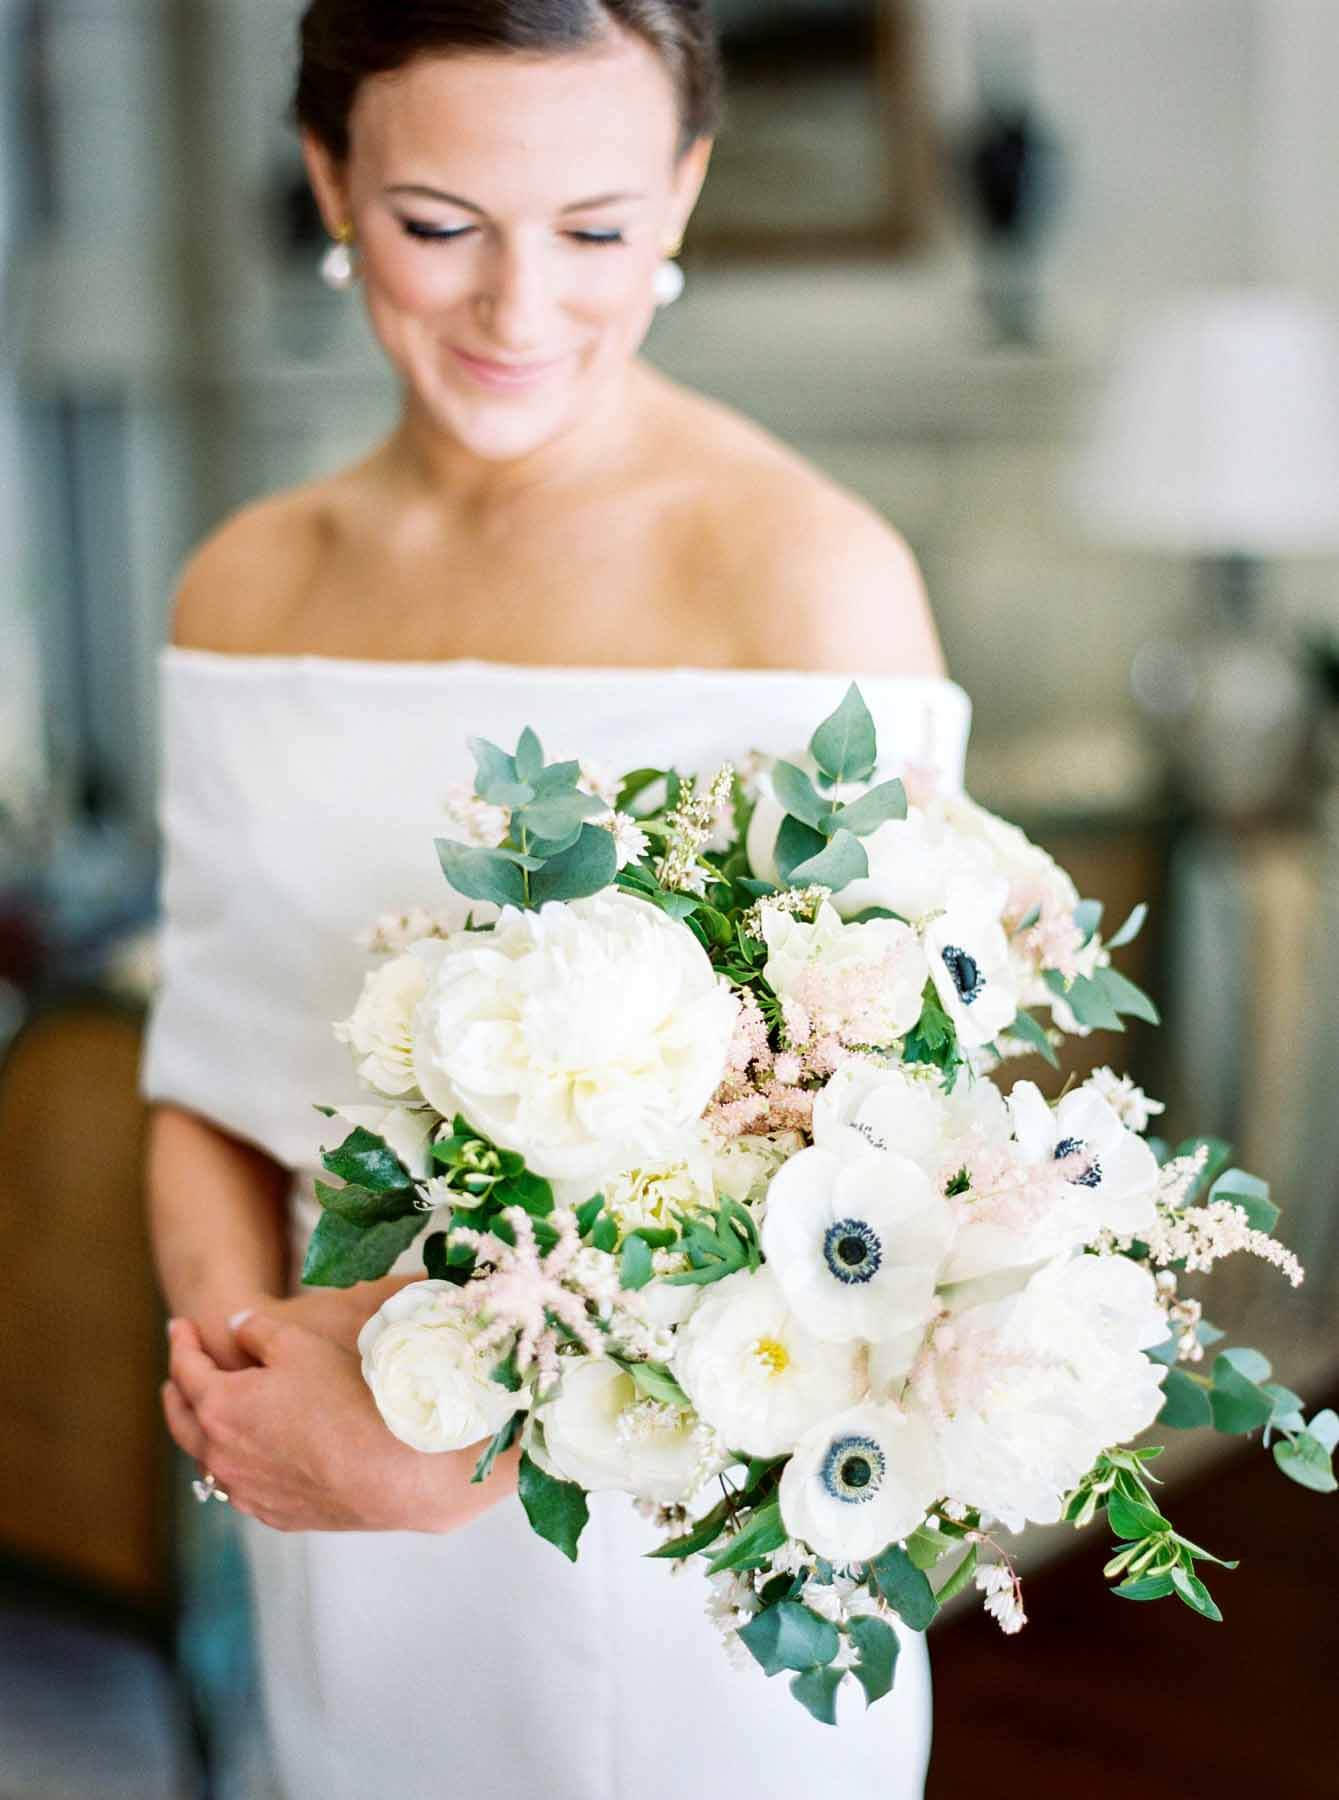 Alli Simmons in her wedding gown, holding her bouquet